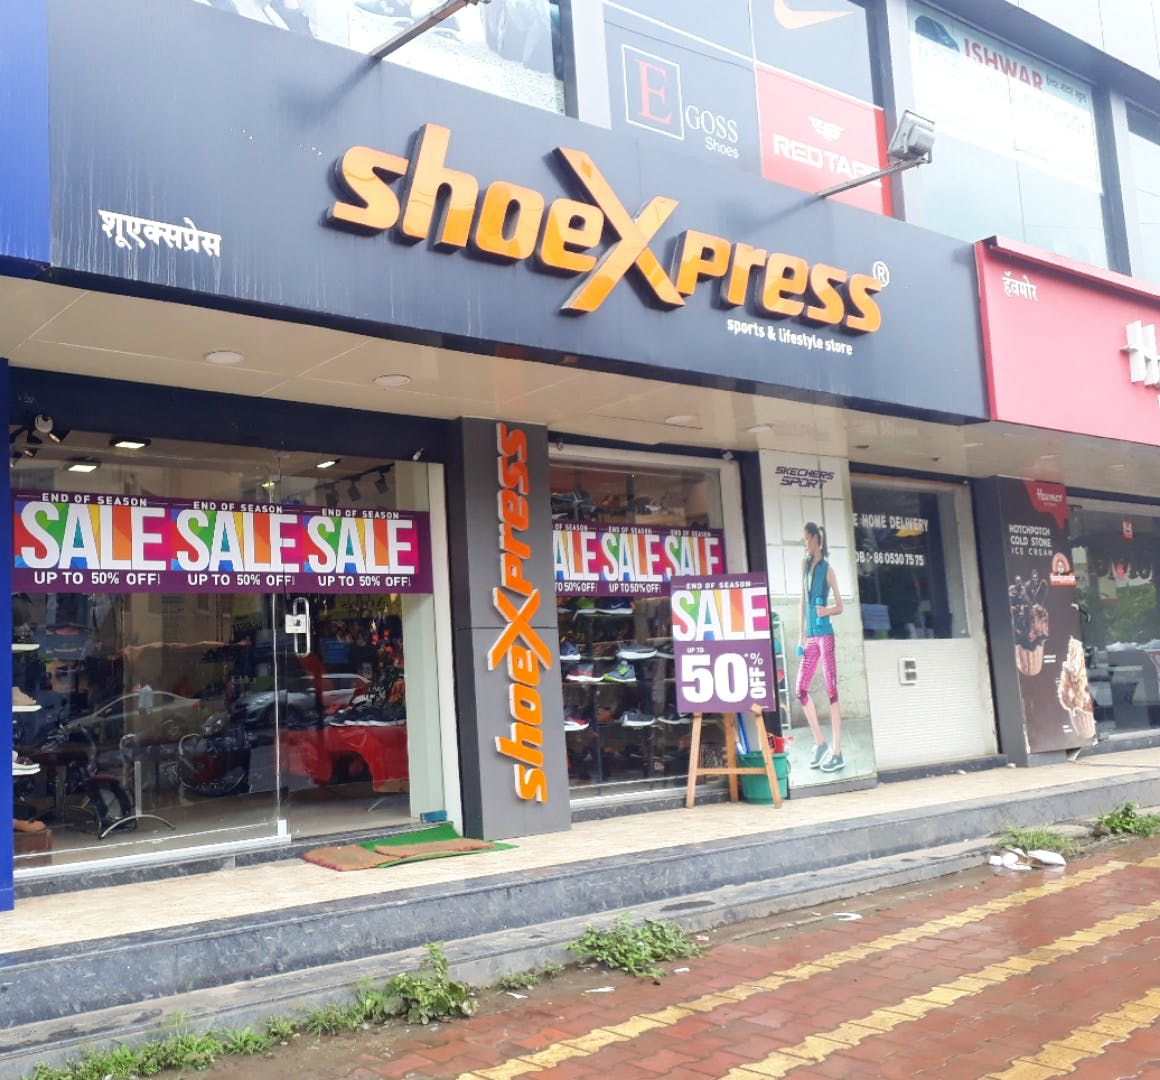 Building,Outlet store,Real estate,Facade,Retail